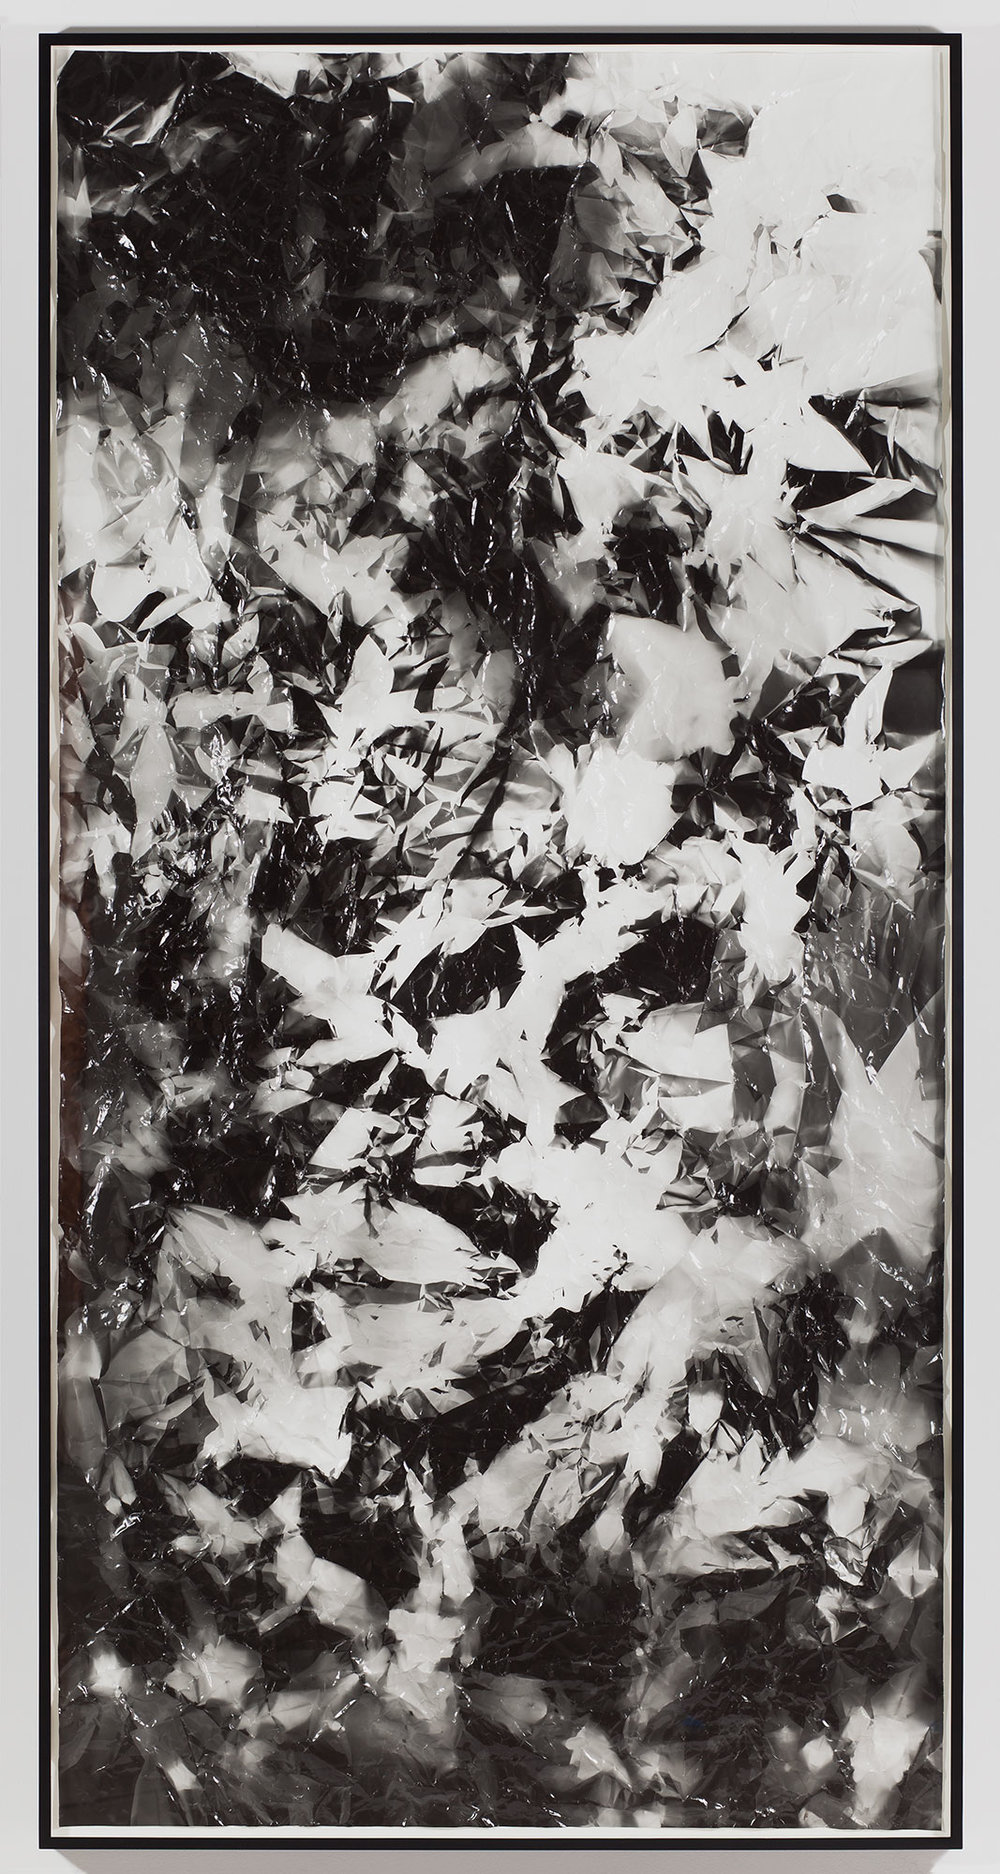 Picture Made by My Hand with the Assistance of Light    2011   Black and white fiber based photographic paper  113 x 55 inches